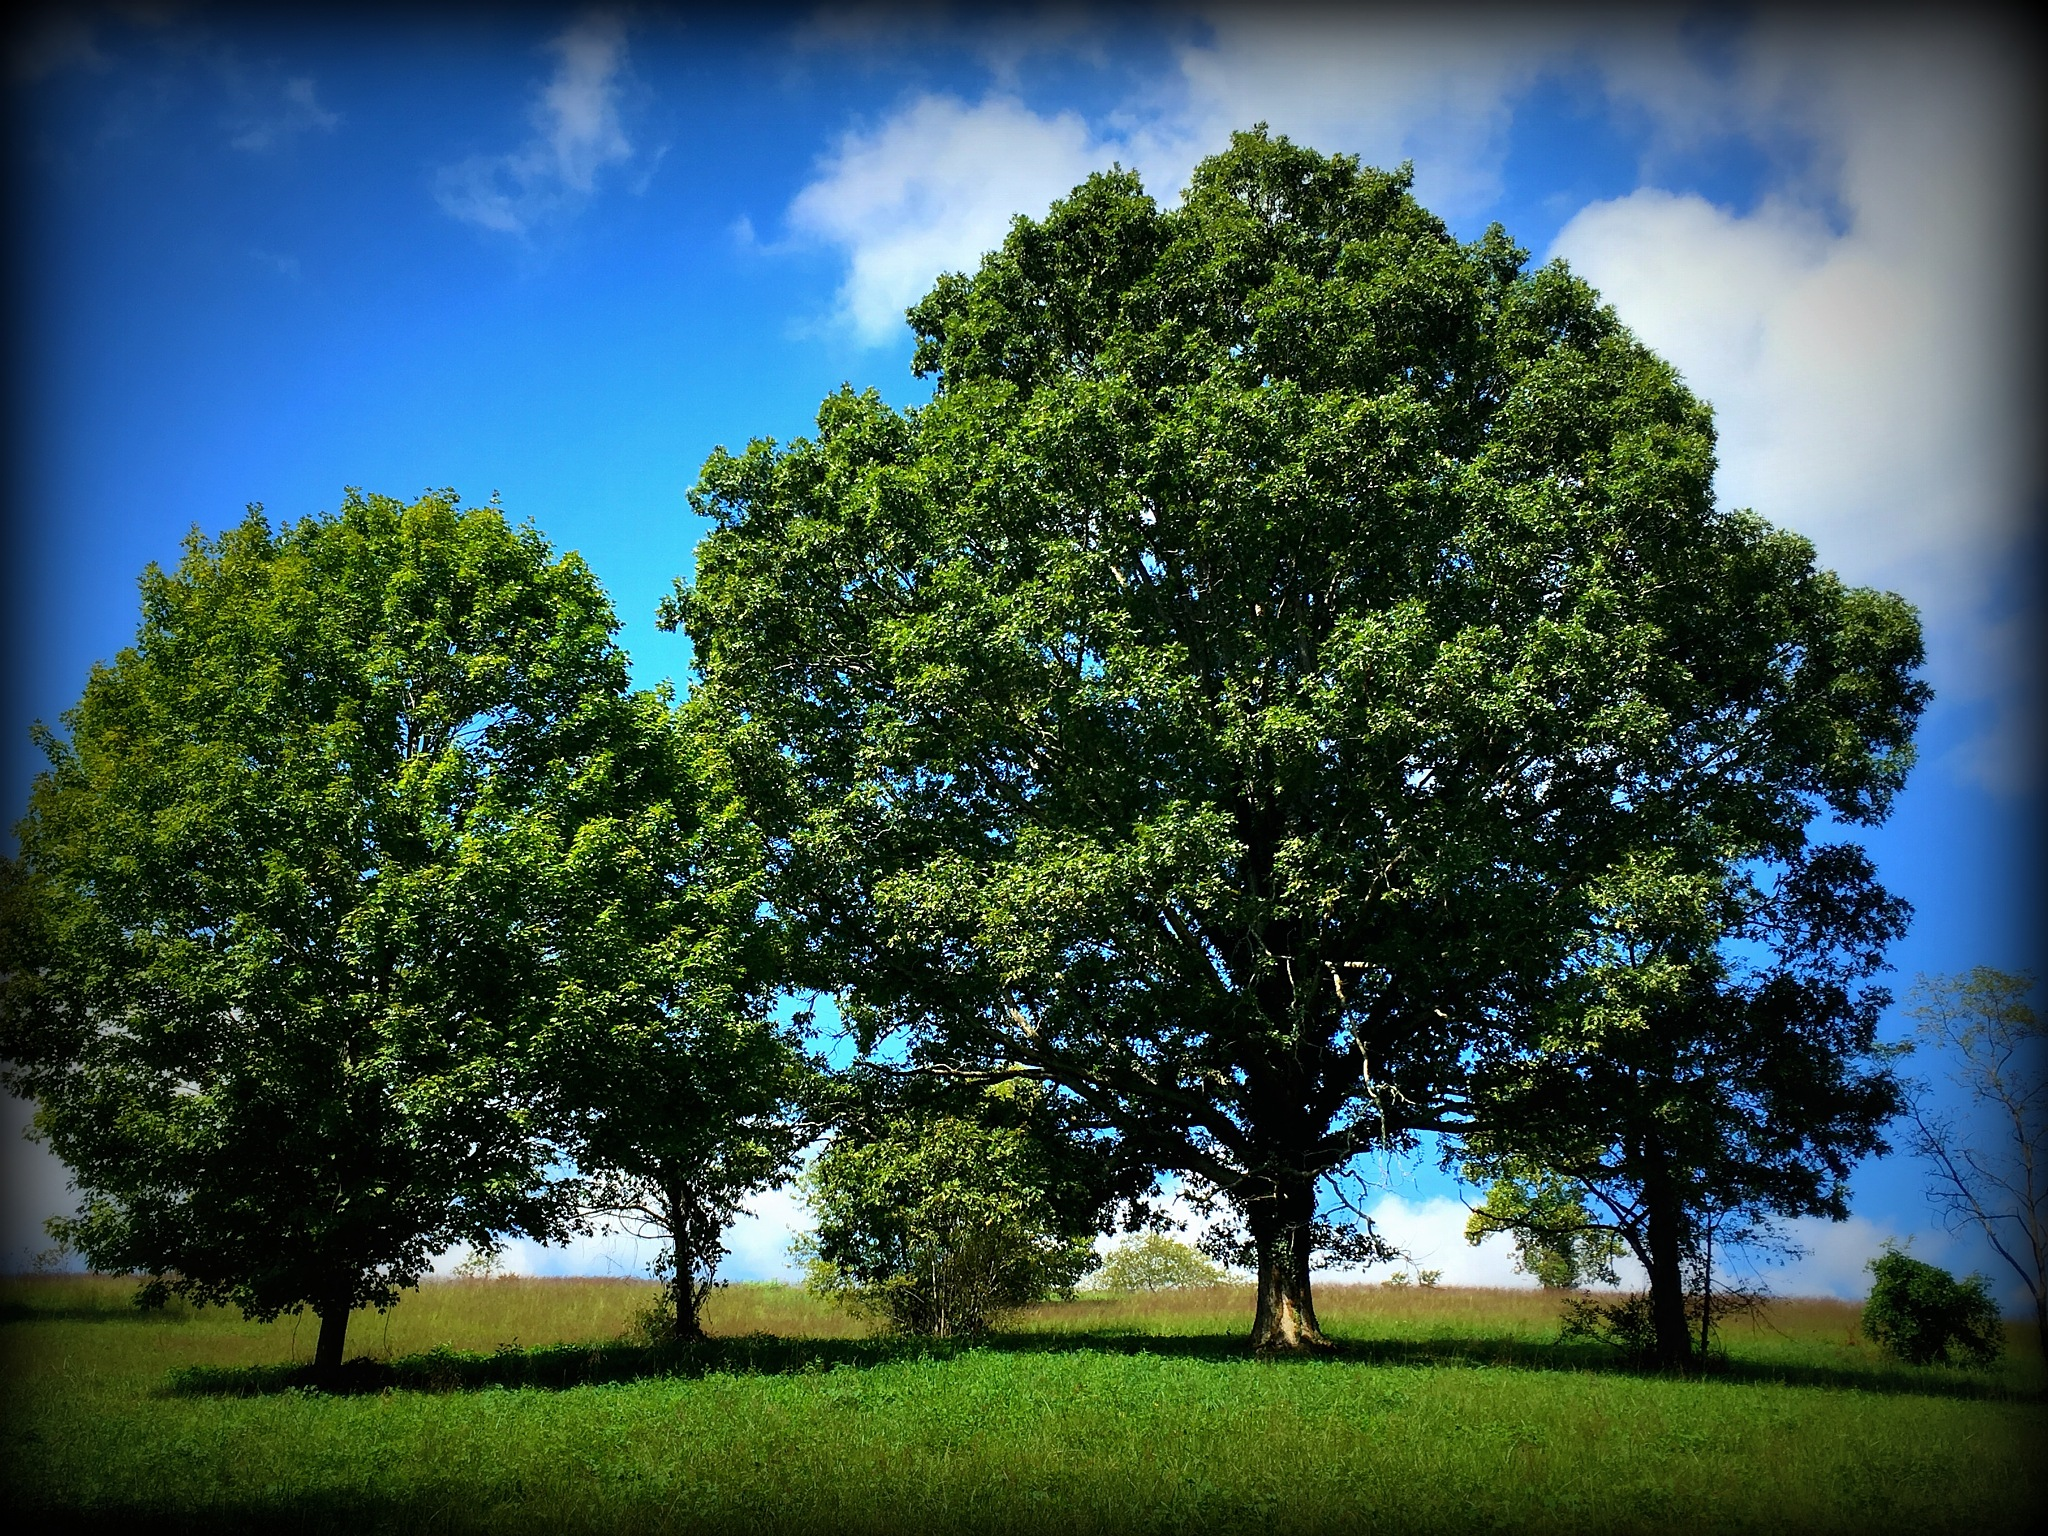 Trees on Biltmore Property by becky.c.jones.3